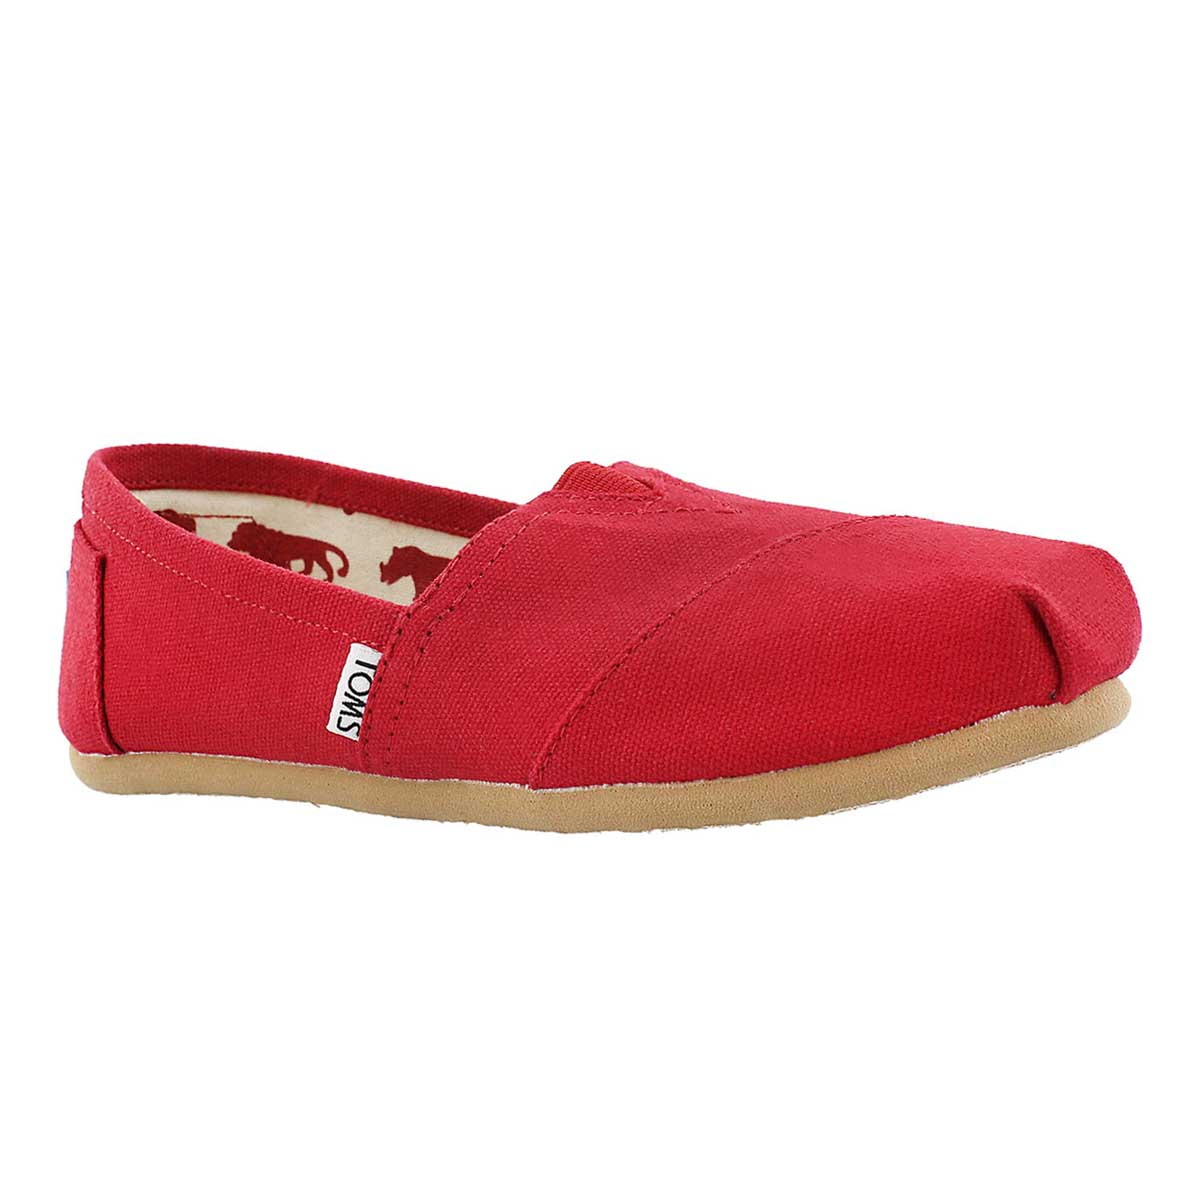 Women's CLASSIC red canvas loafers